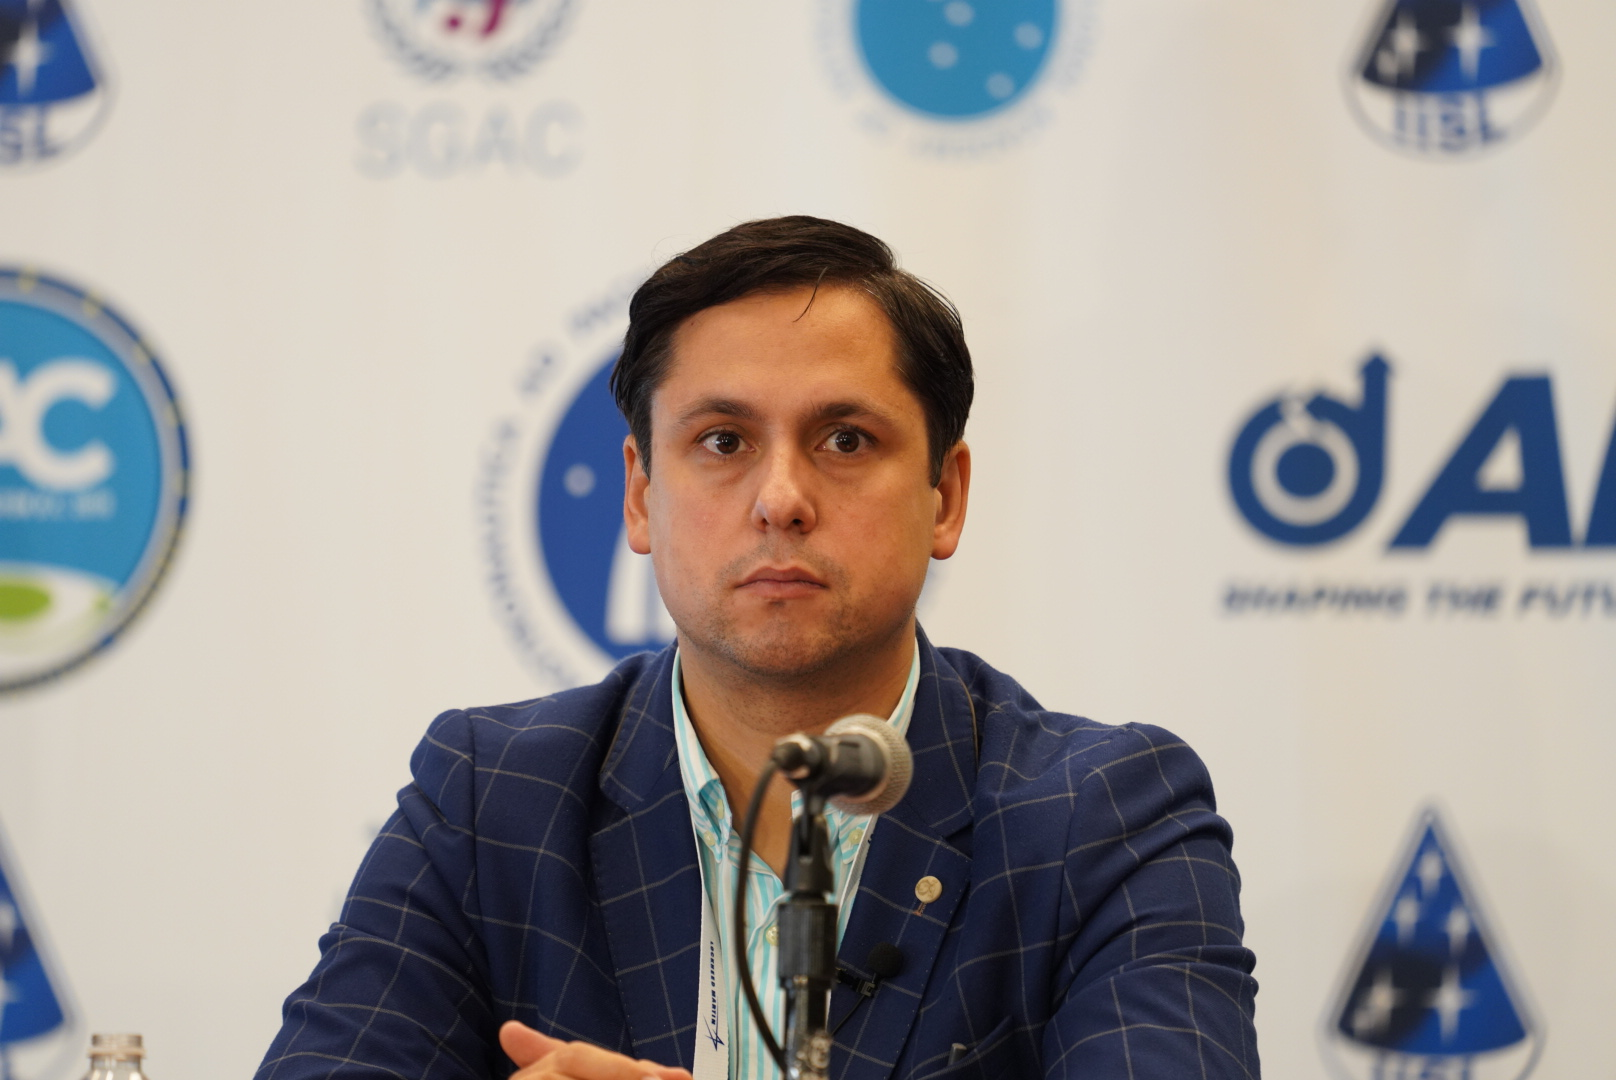 Spacebit CEO Pavlo Tanasyuk